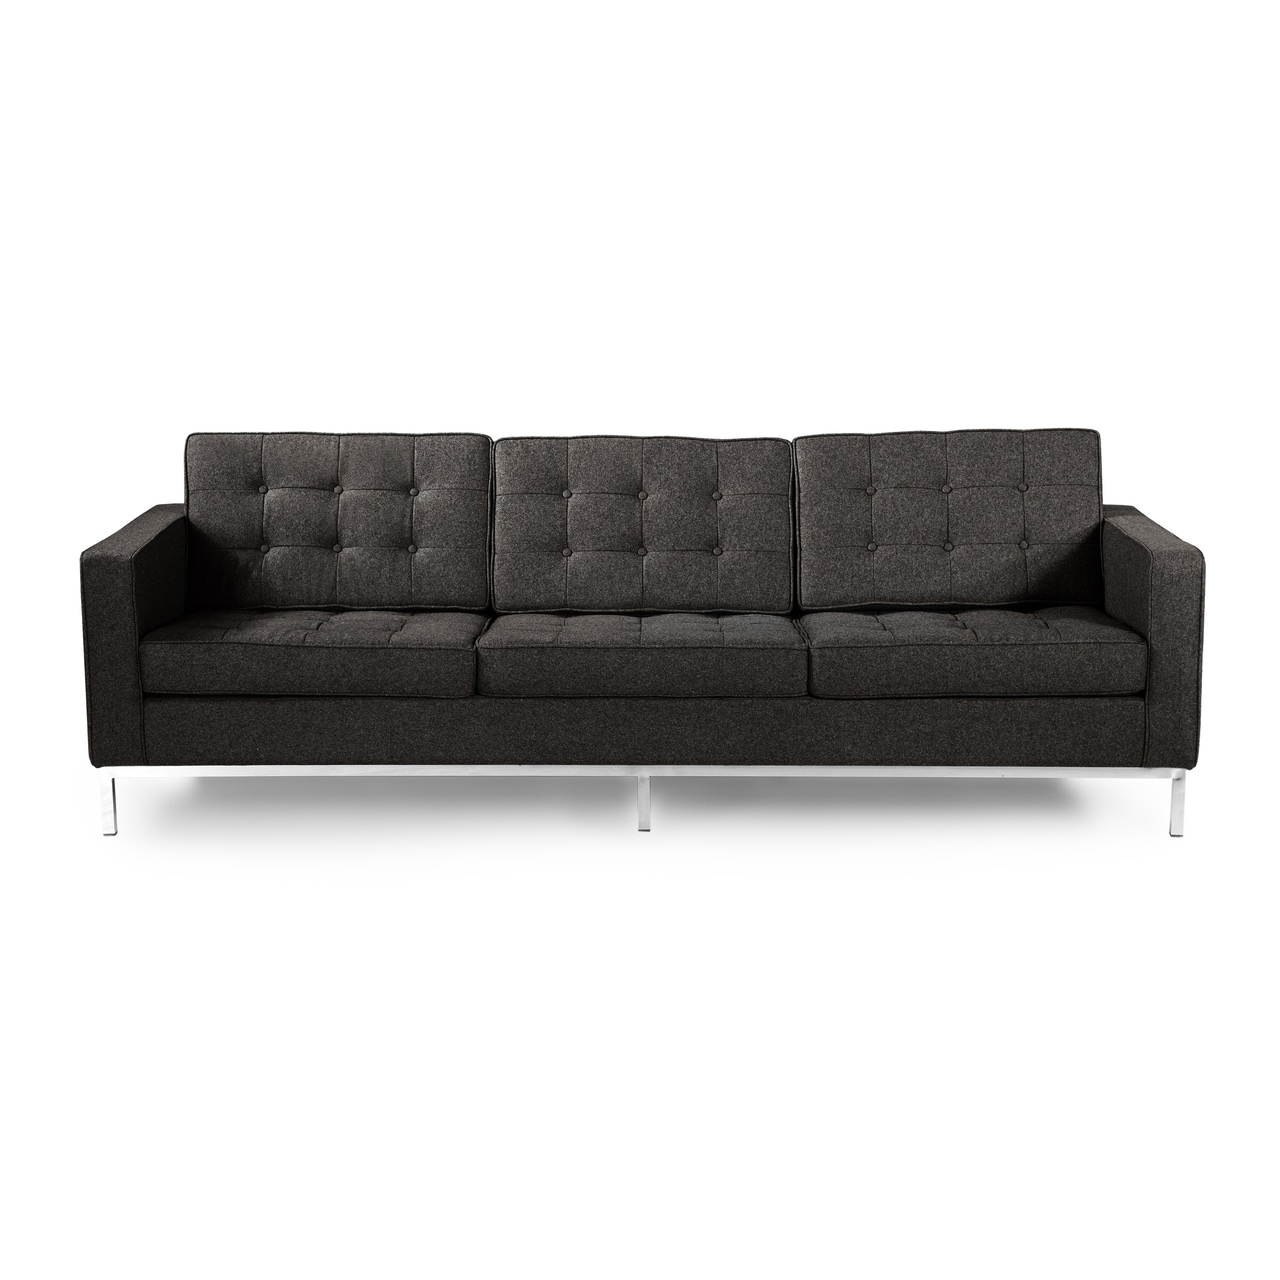 Favorite Kardiel Florence Knoll Style 3 Seat Sofa, Cashmere Wool – Free Within Florence Knoll Leather Sofas (View 7 of 20)